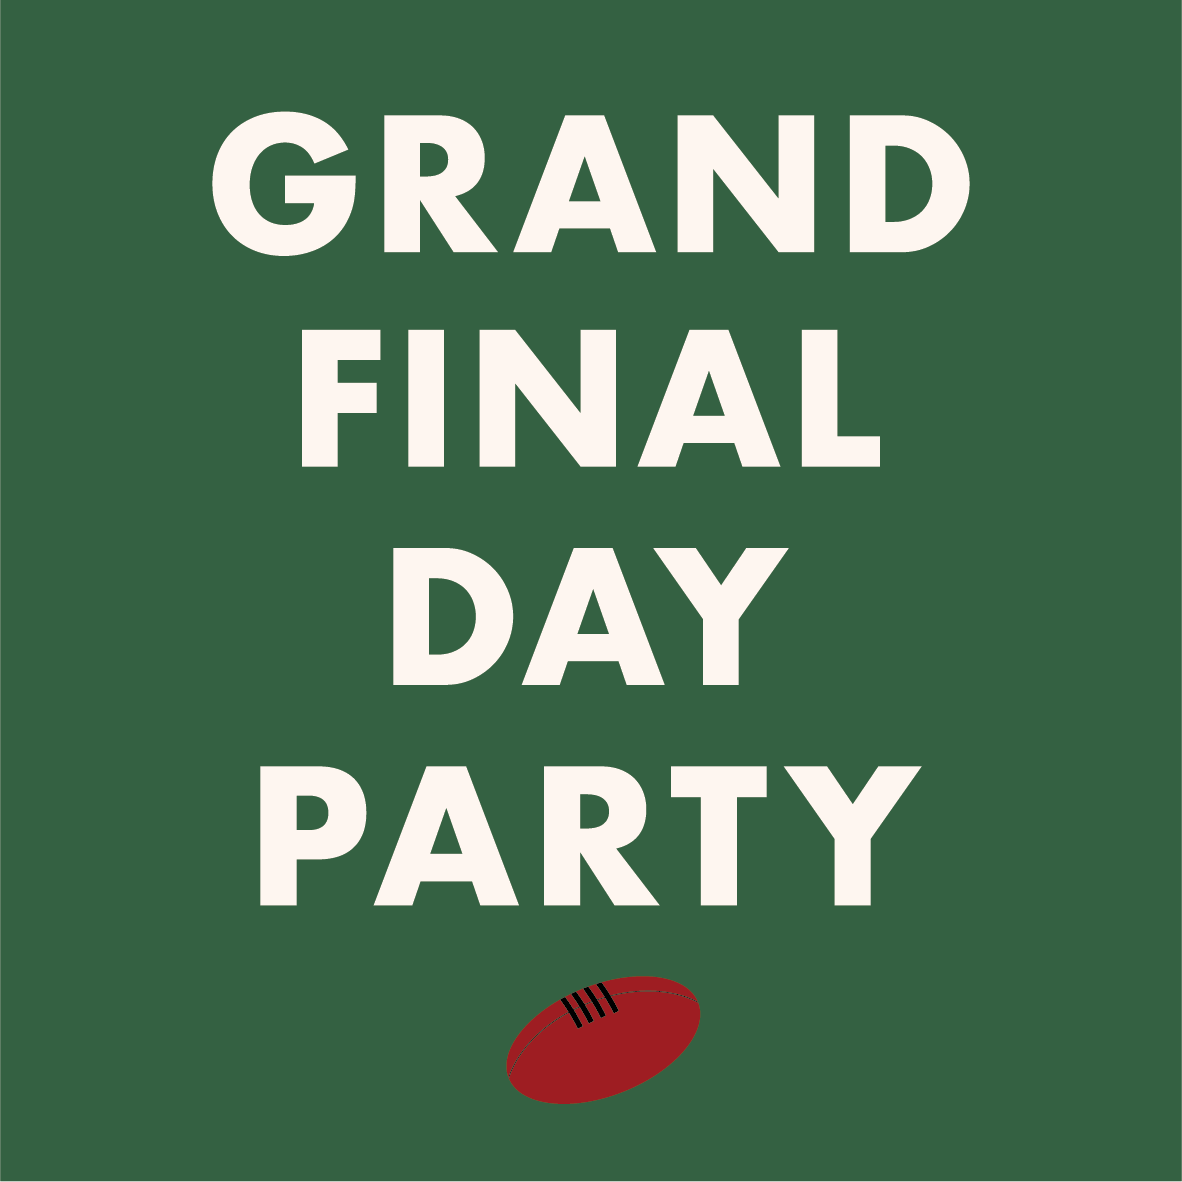 Grand Final Day Party - image Leveson_Instagram_GrandFinalDay-03 on https://theleveson.melbourne